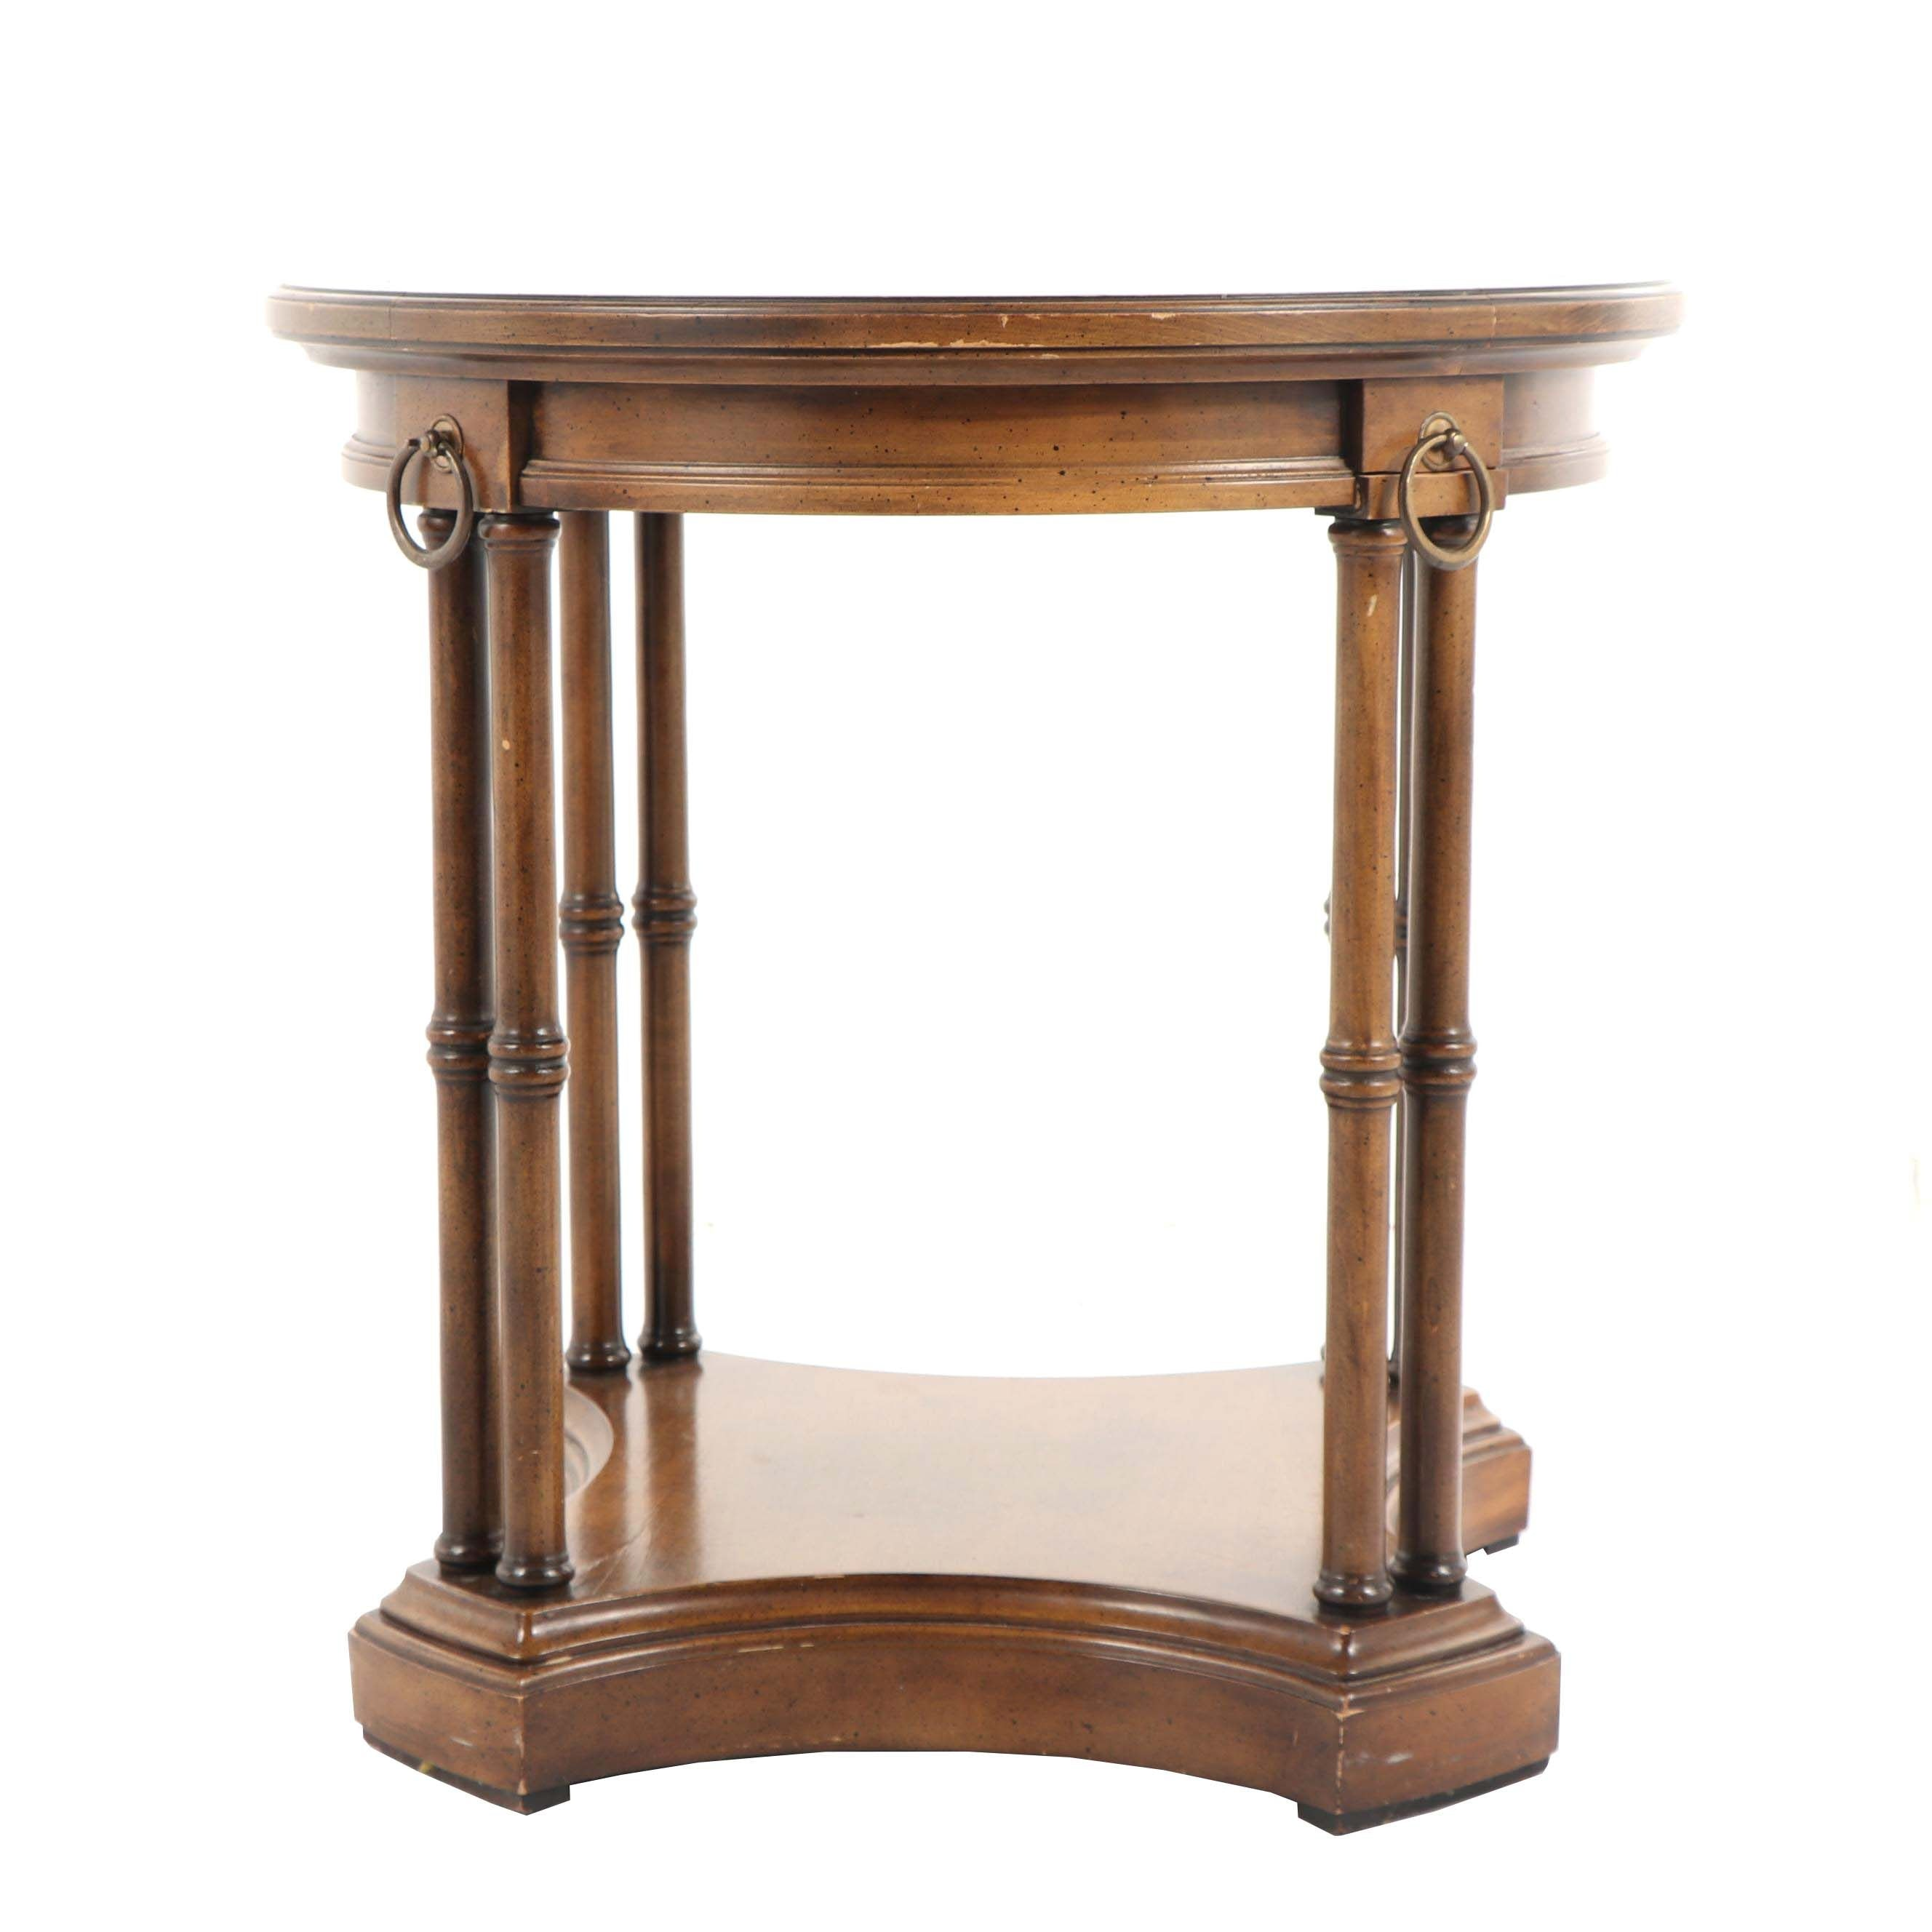 Neoclassical Style Walnut Occasional Table by Brandt, Late 20th Century